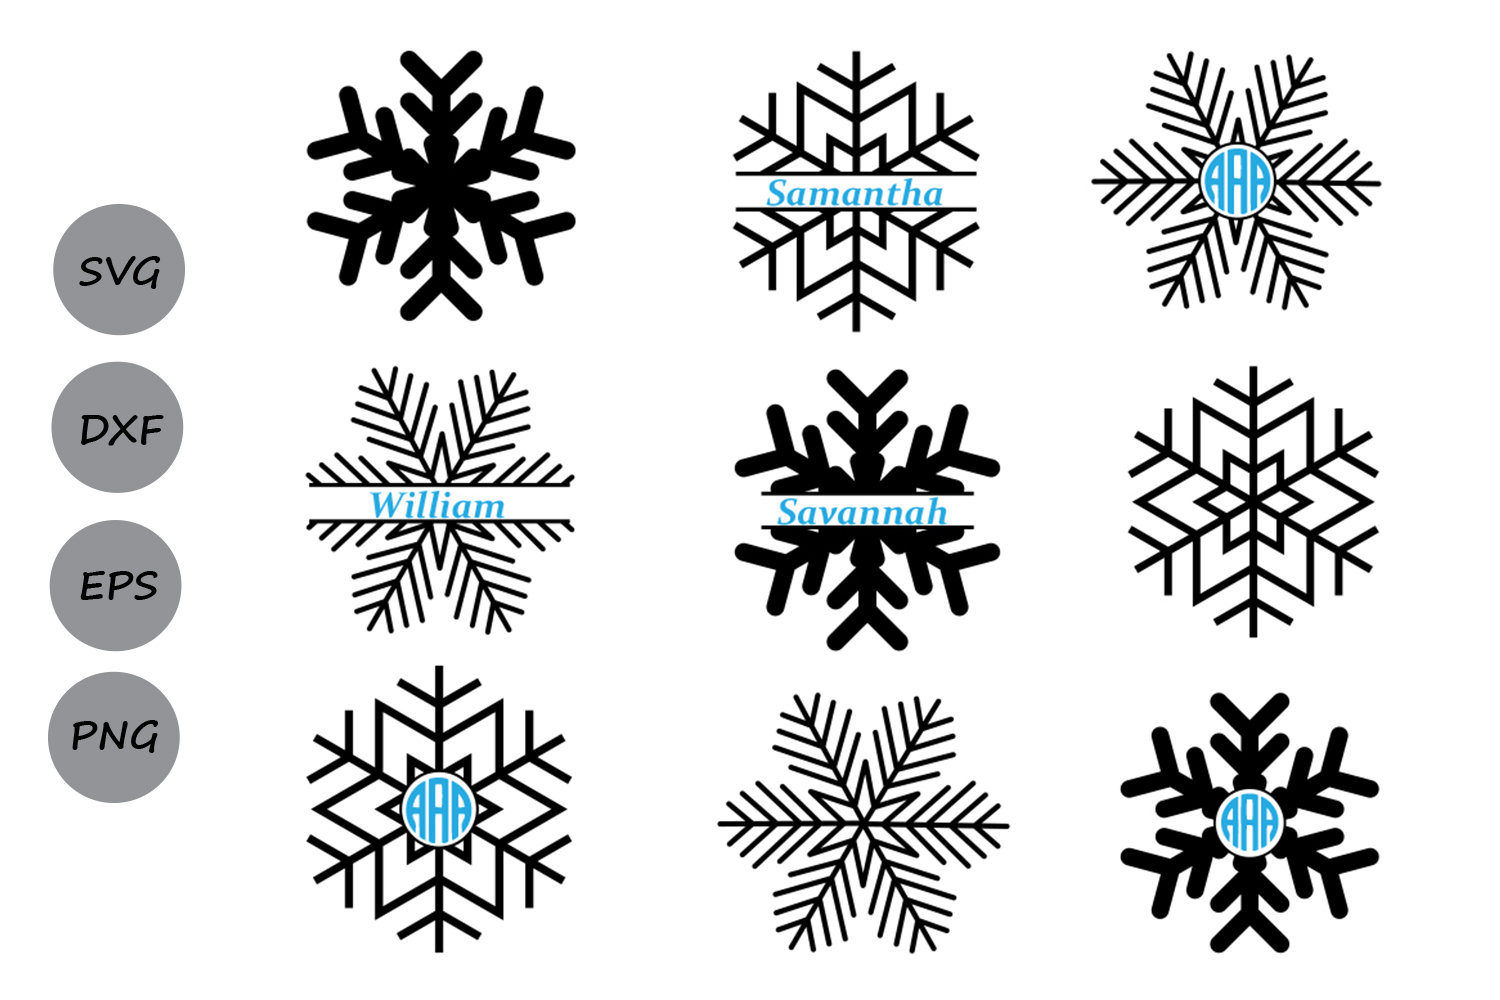 Download Free Snowflake Monogram Graphic By Cosmosfineart Creative Fabrica for Cricut Explore, Silhouette and other cutting machines.